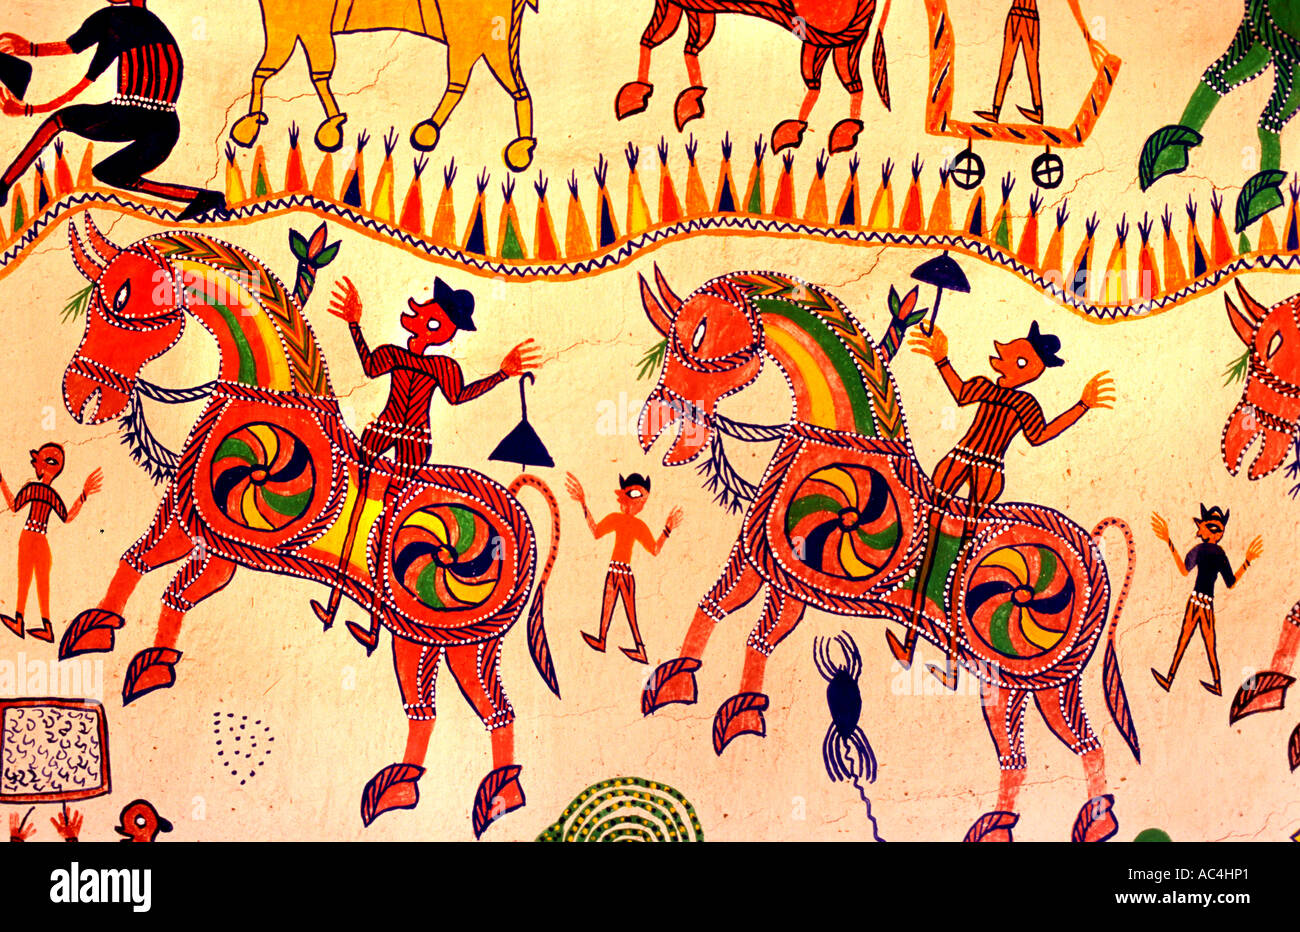 Painting Horse India Stock Photos & Painting Horse India Stock ...